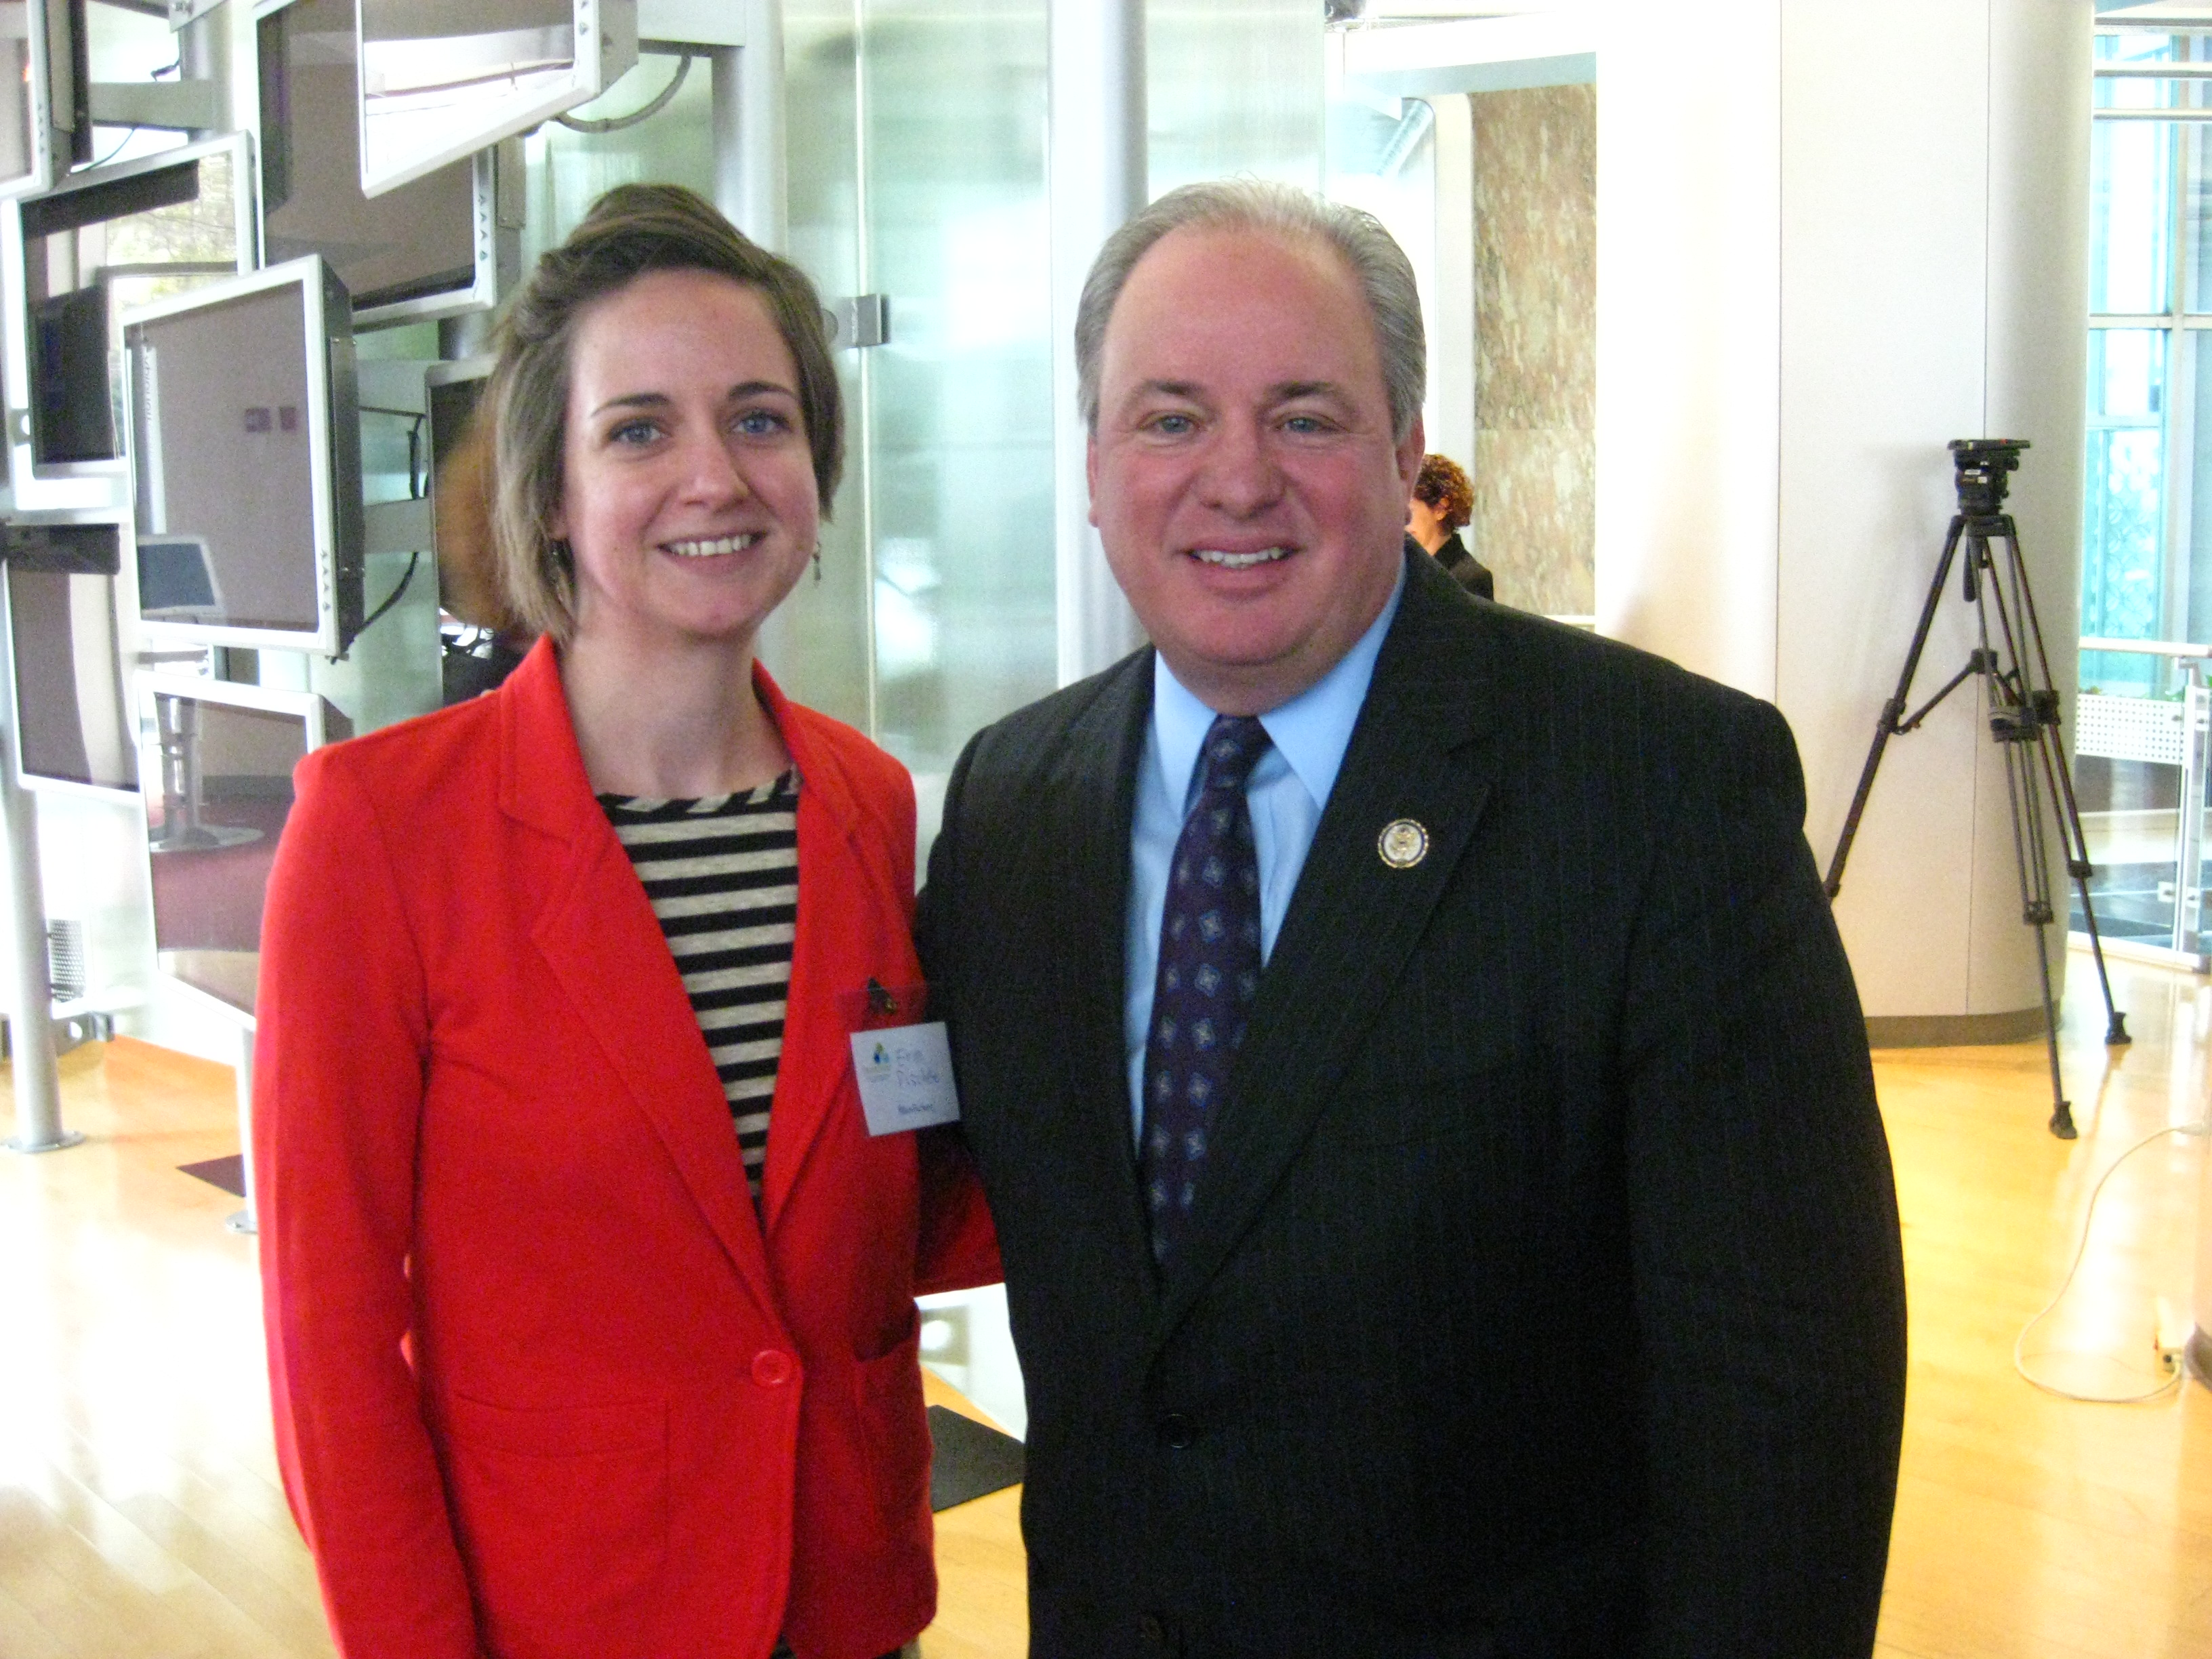 Erini and Congressman Doyle